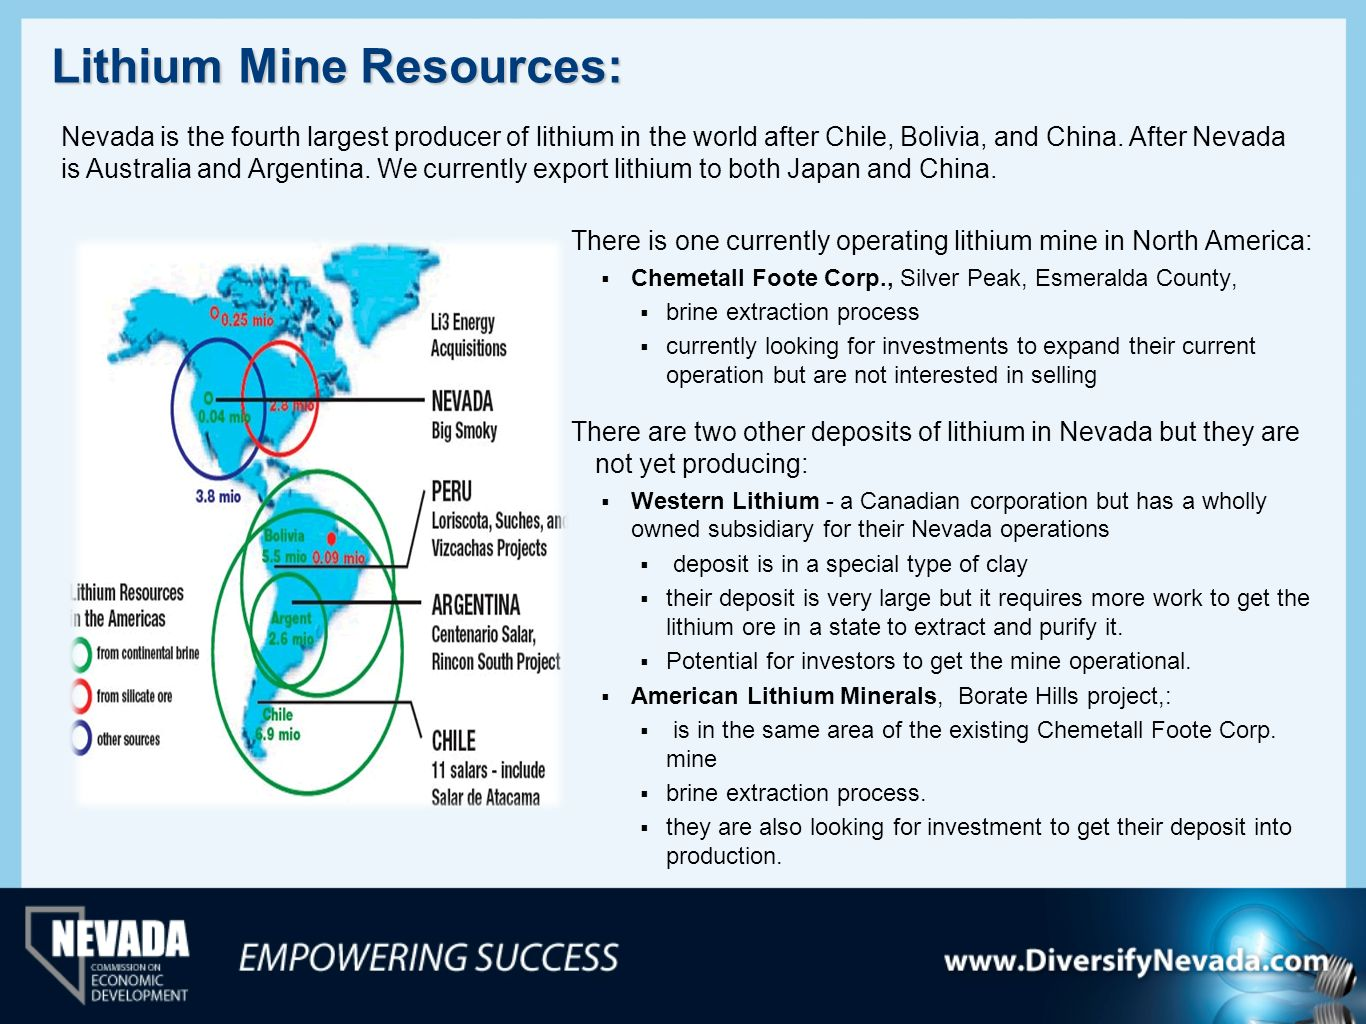 Lithium Mine Resources: